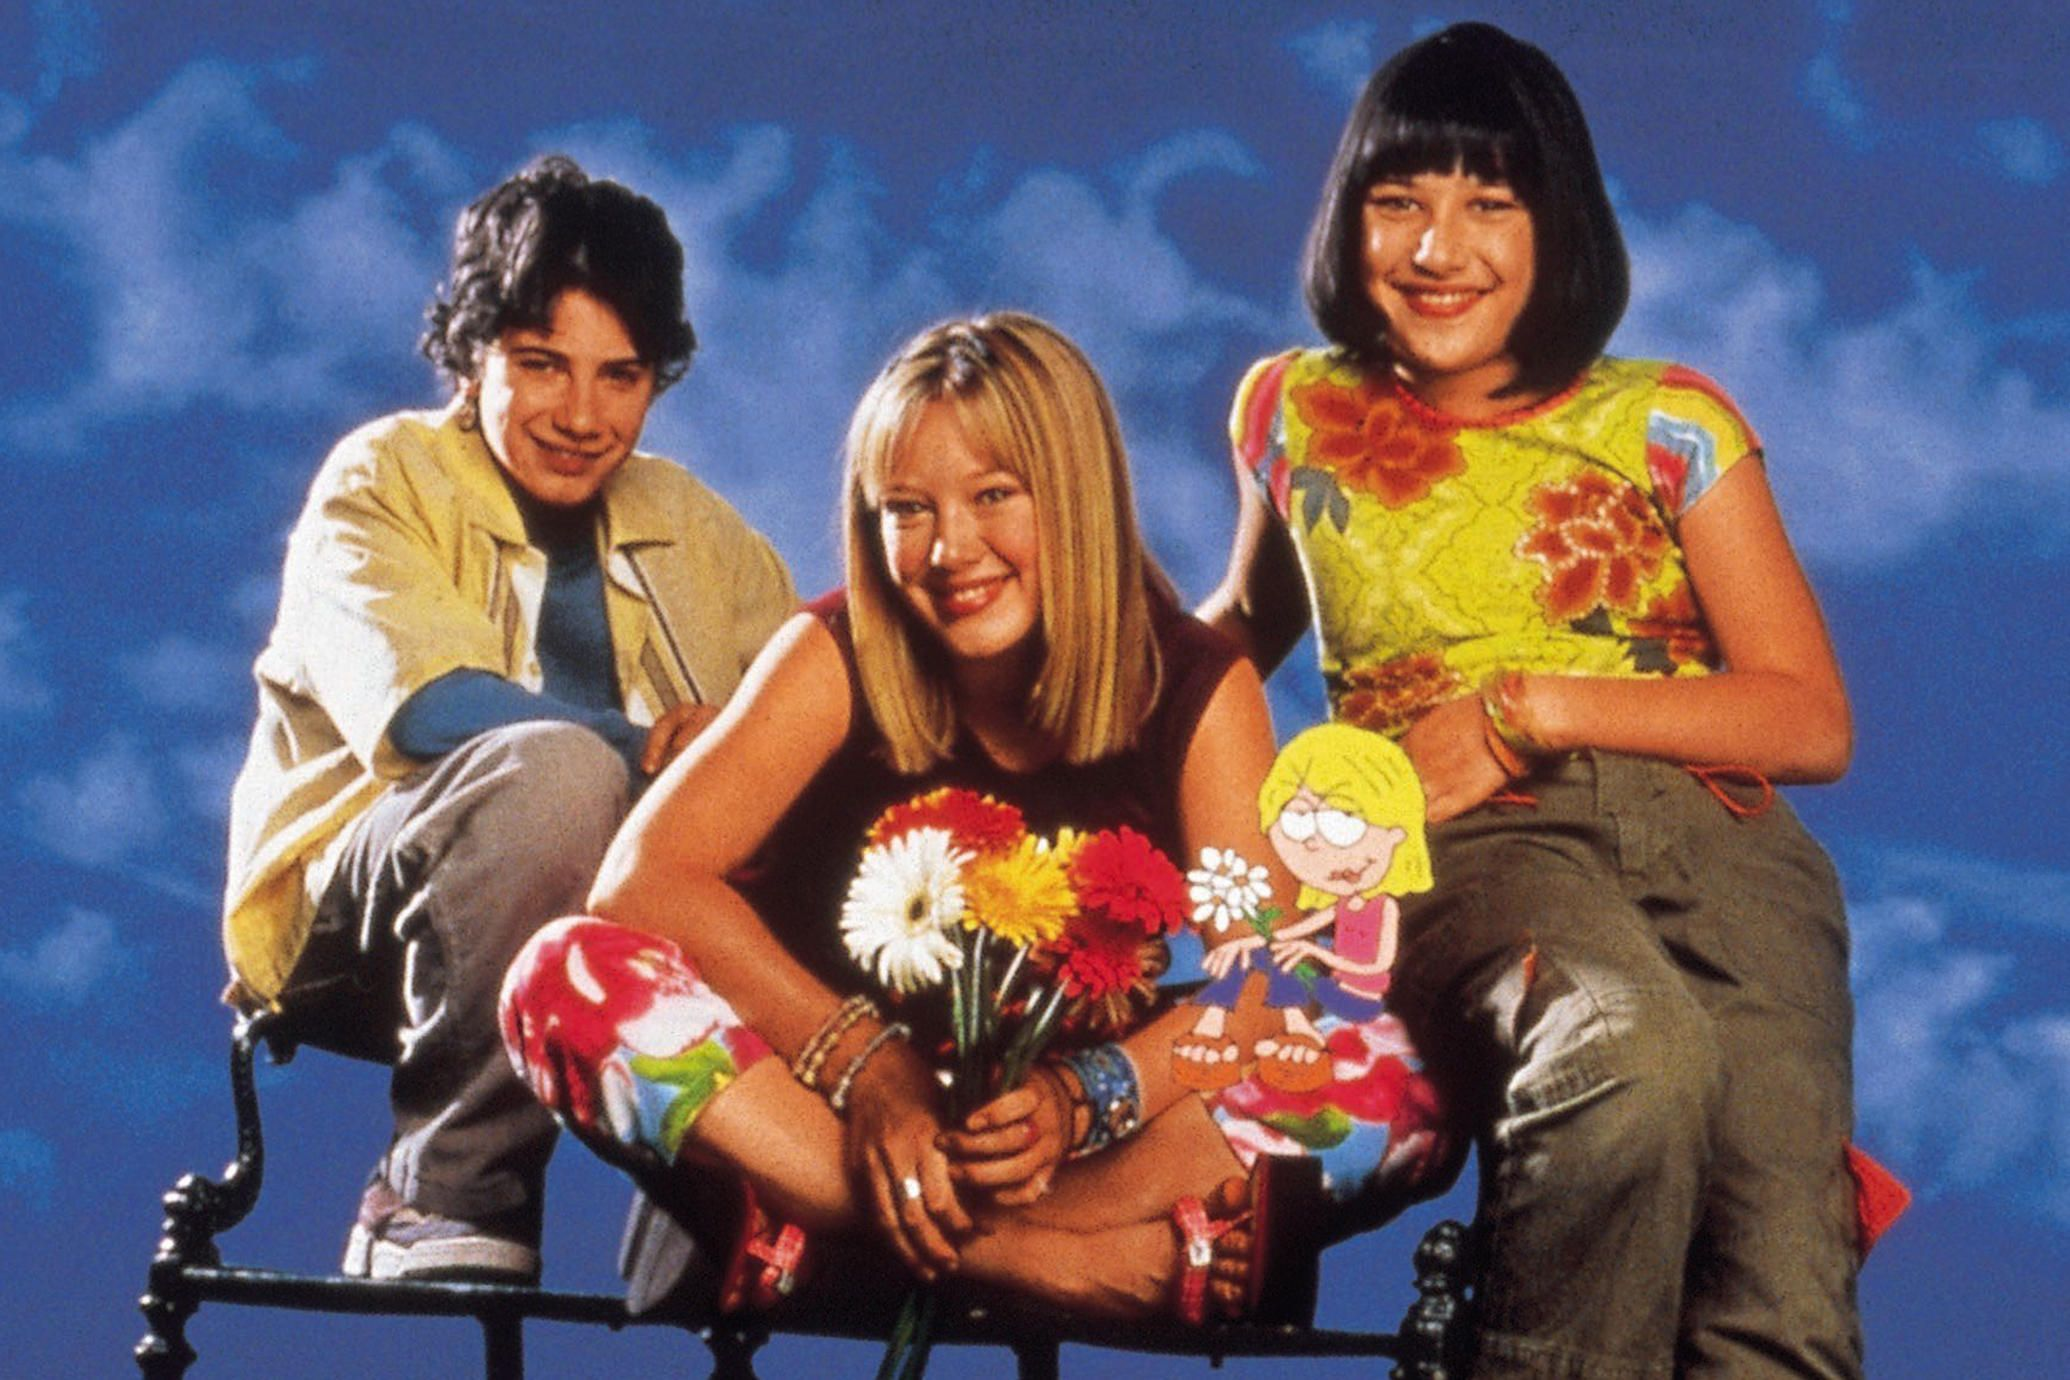 Everything We Know About the Lizzie McGuire Revival #lizziemcguire